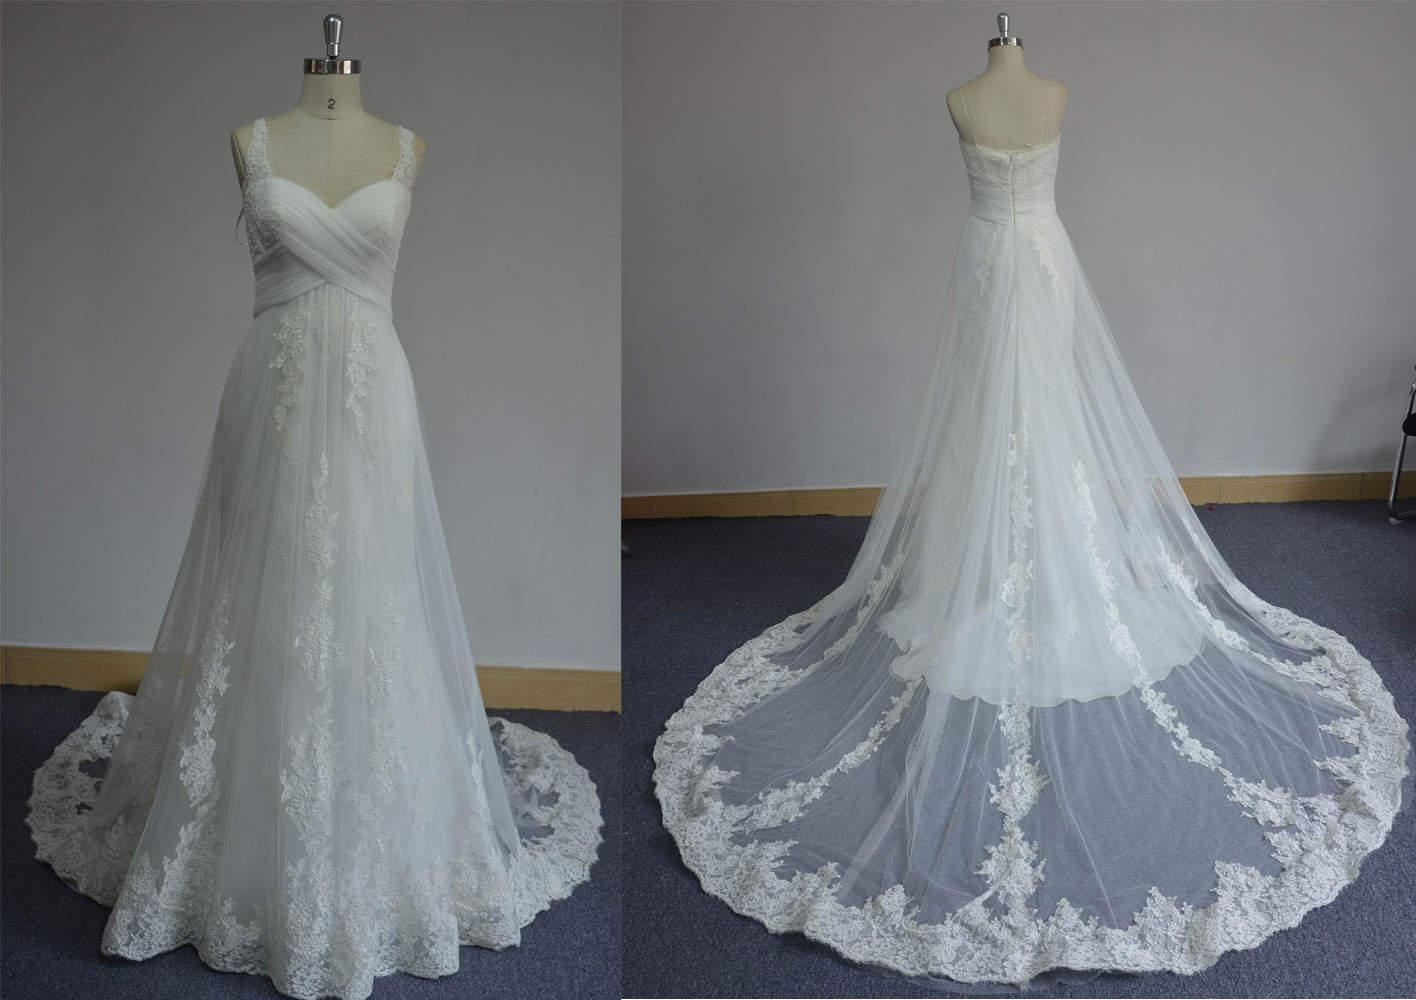 Lace maternity wedding gowns with empire waist darius for Empire waist plus size wedding dress